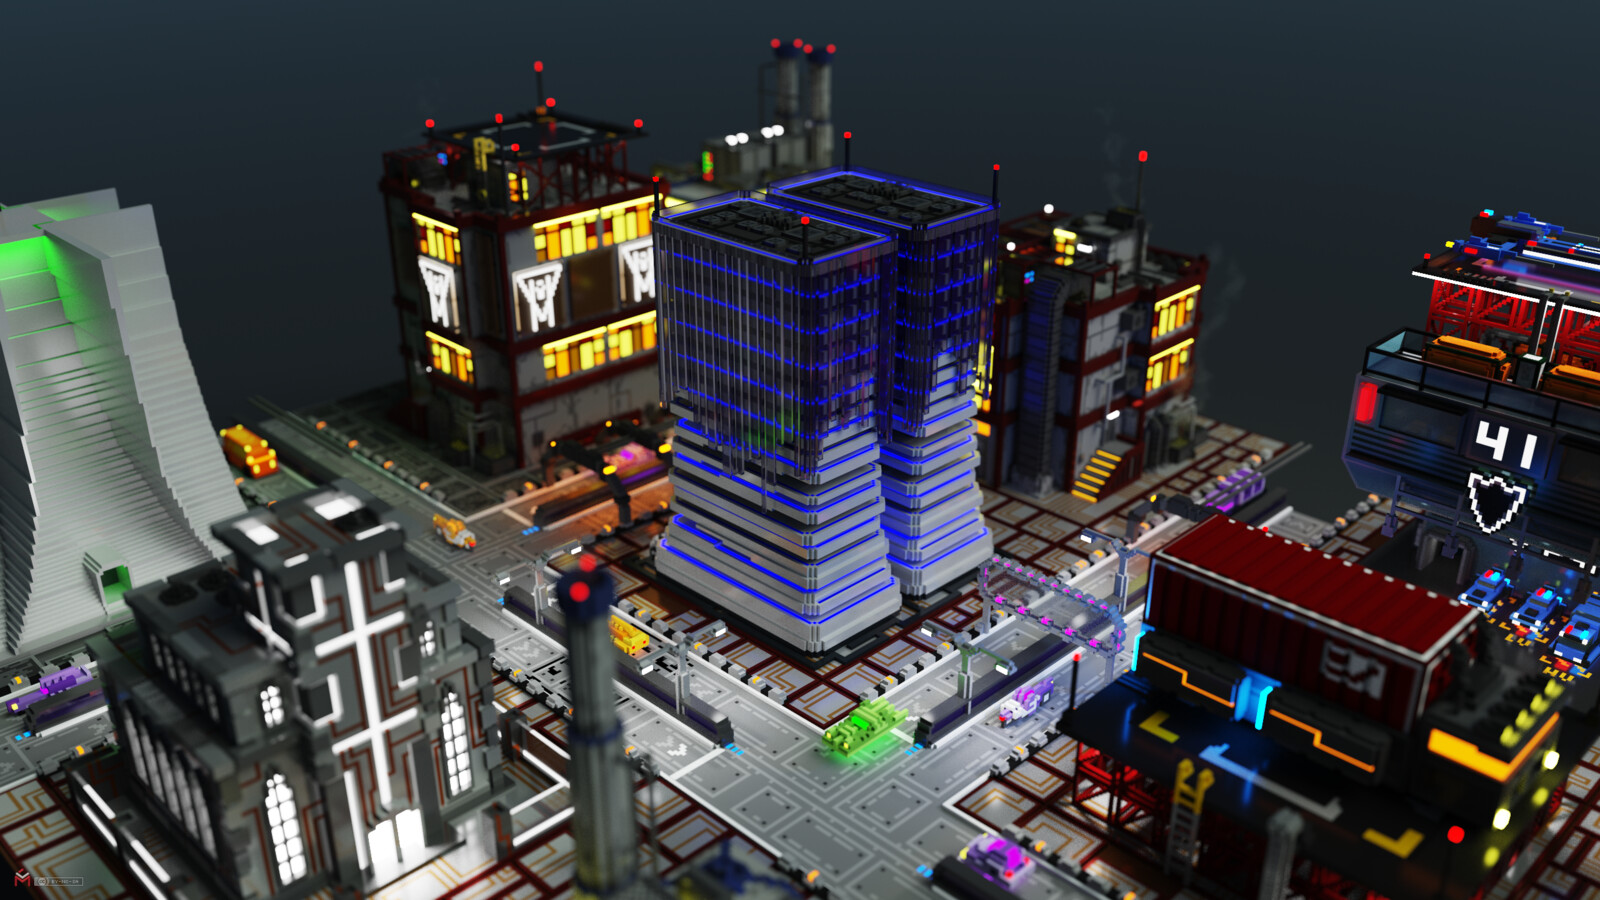 """""""MCP Relay"""" among additional models by Muerto_ni, StarVox and Starvick, licensed under CC BY-NC-SA 4.0 MagicaVoxel render - february 2020"""